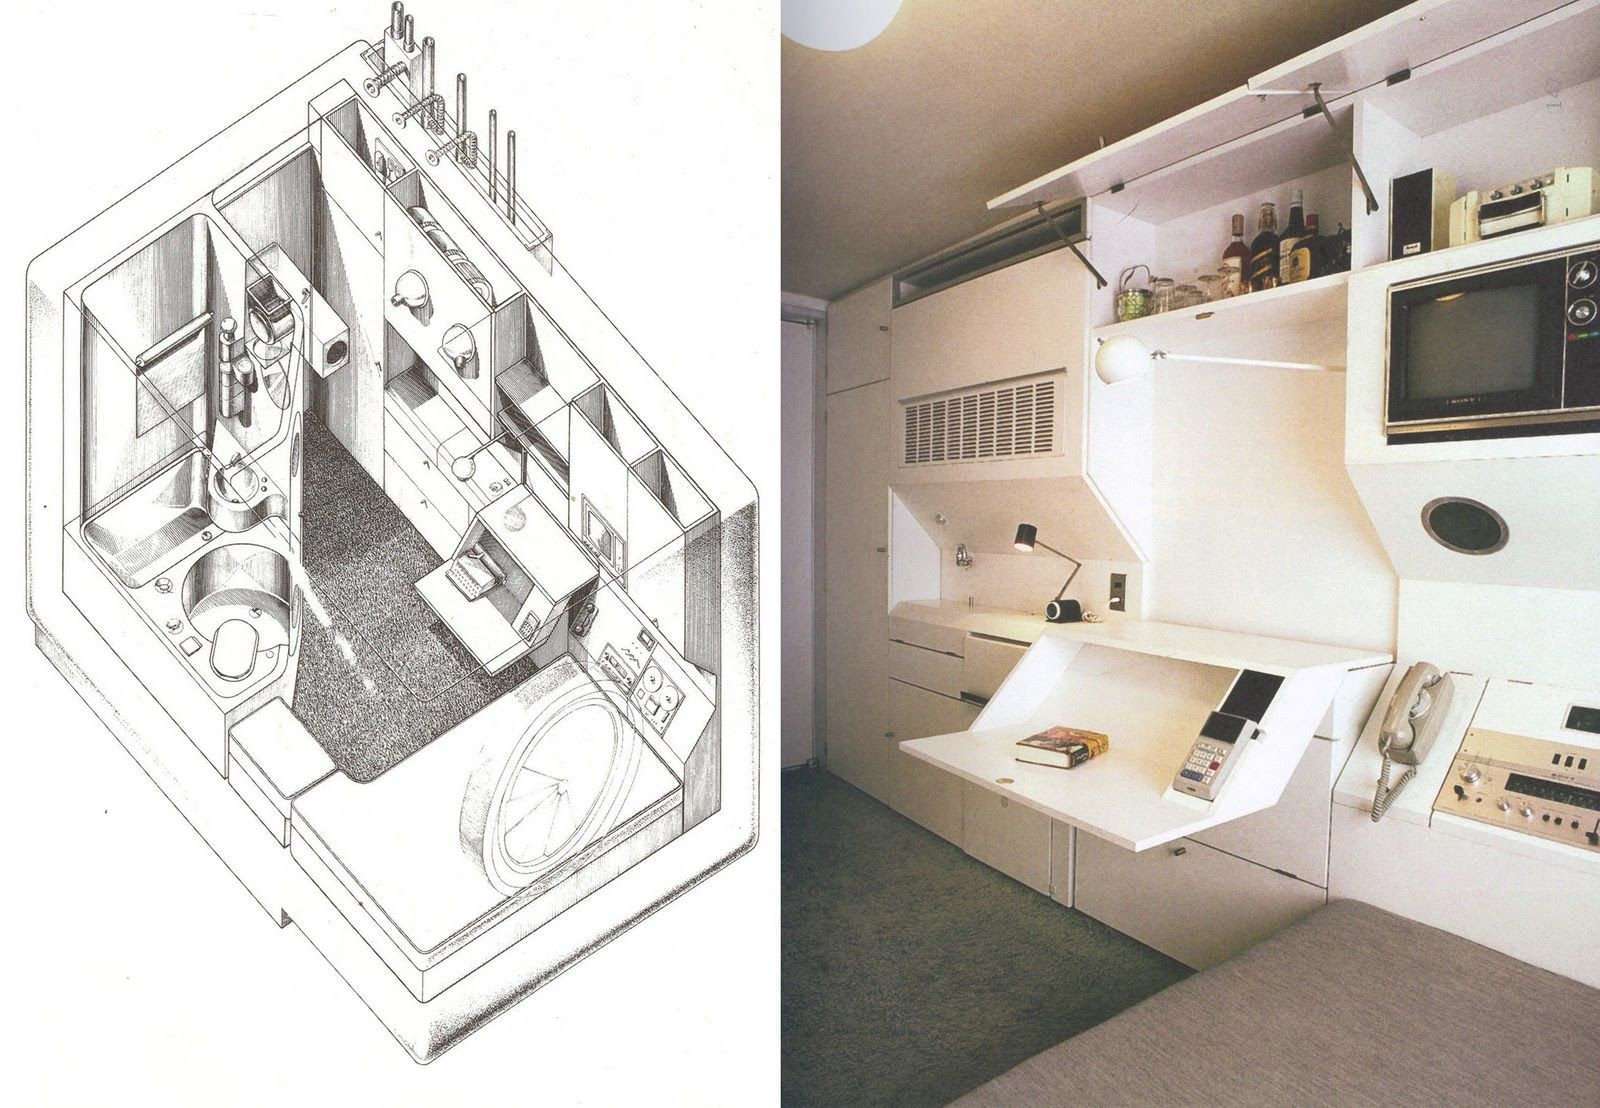 Nakagin Capsule Tower Cool Design And A Great Idea Too Bad The Building Is So Run Down Now